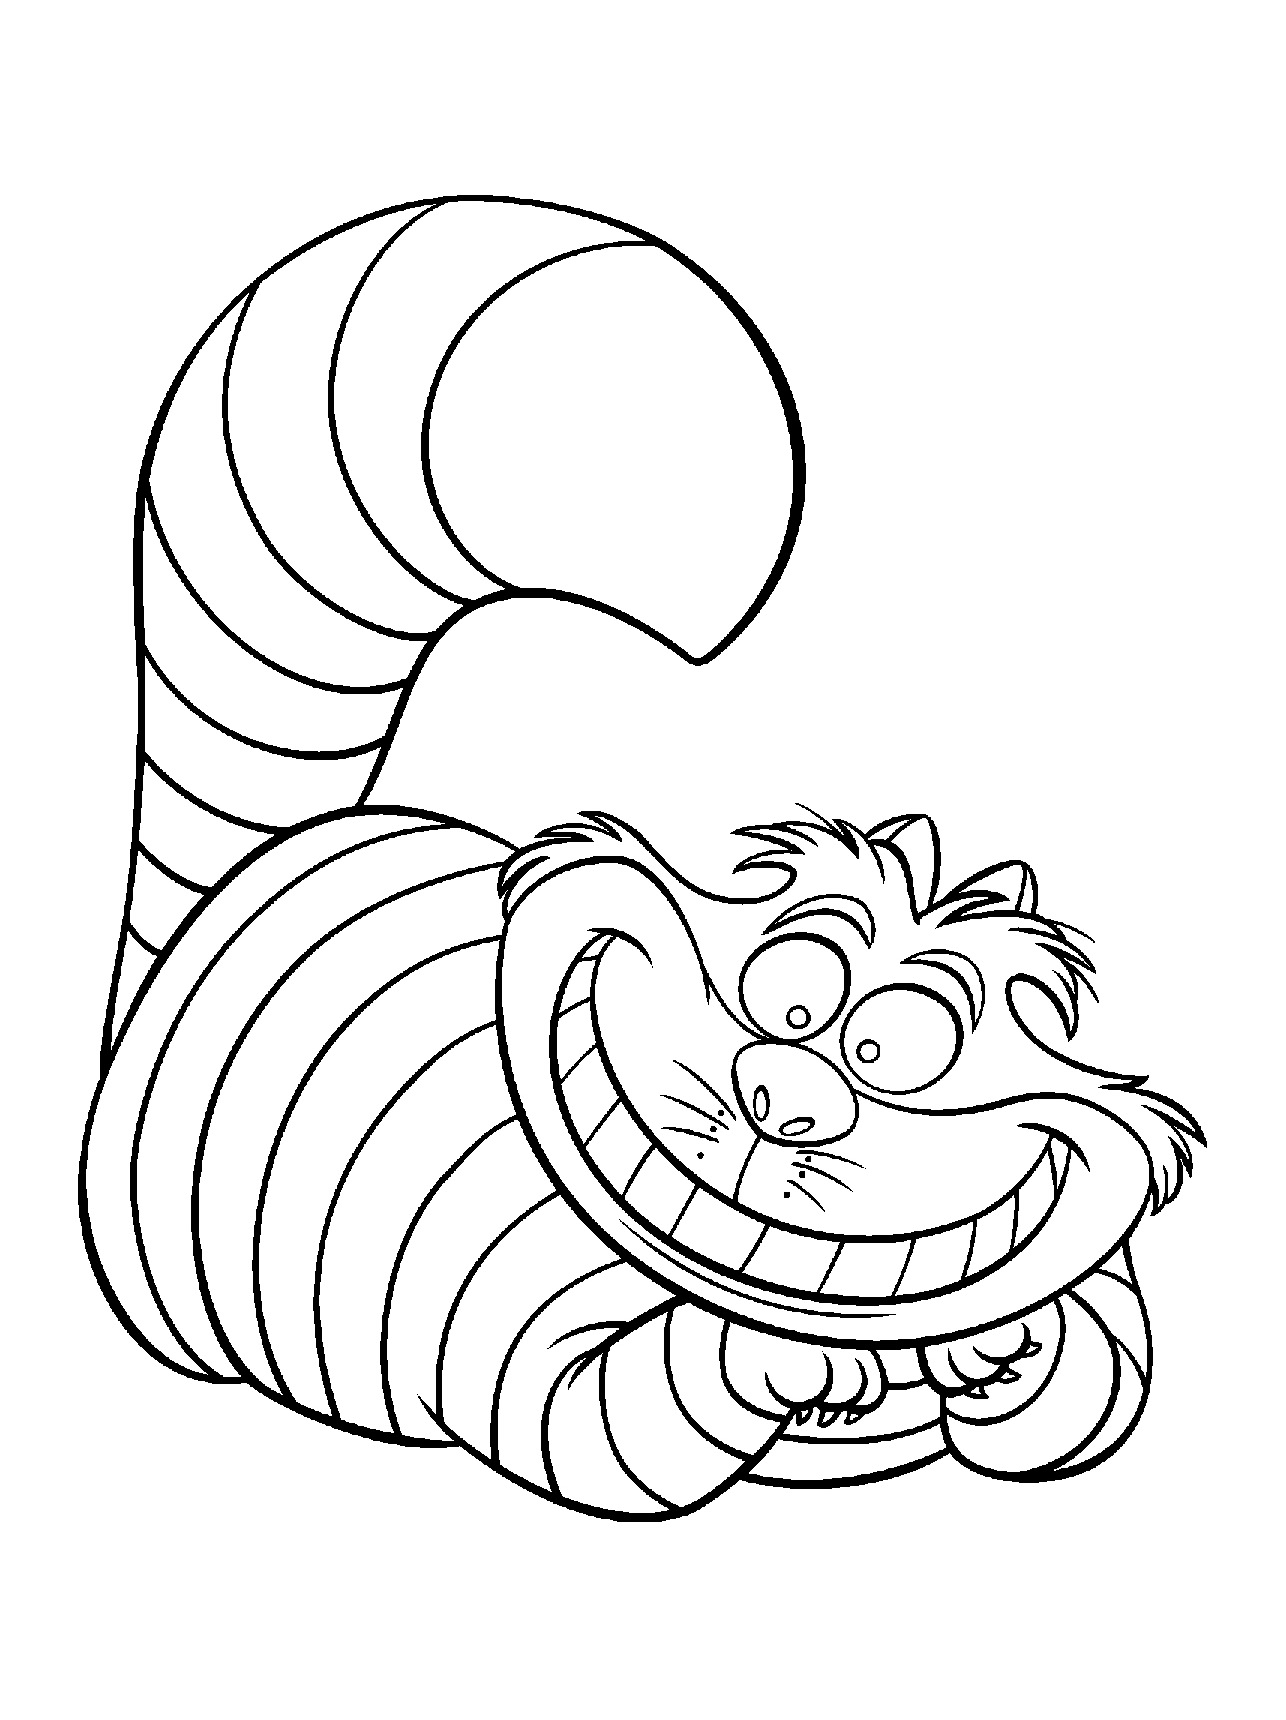 Alice To Download Alice Kids Coloring Pages